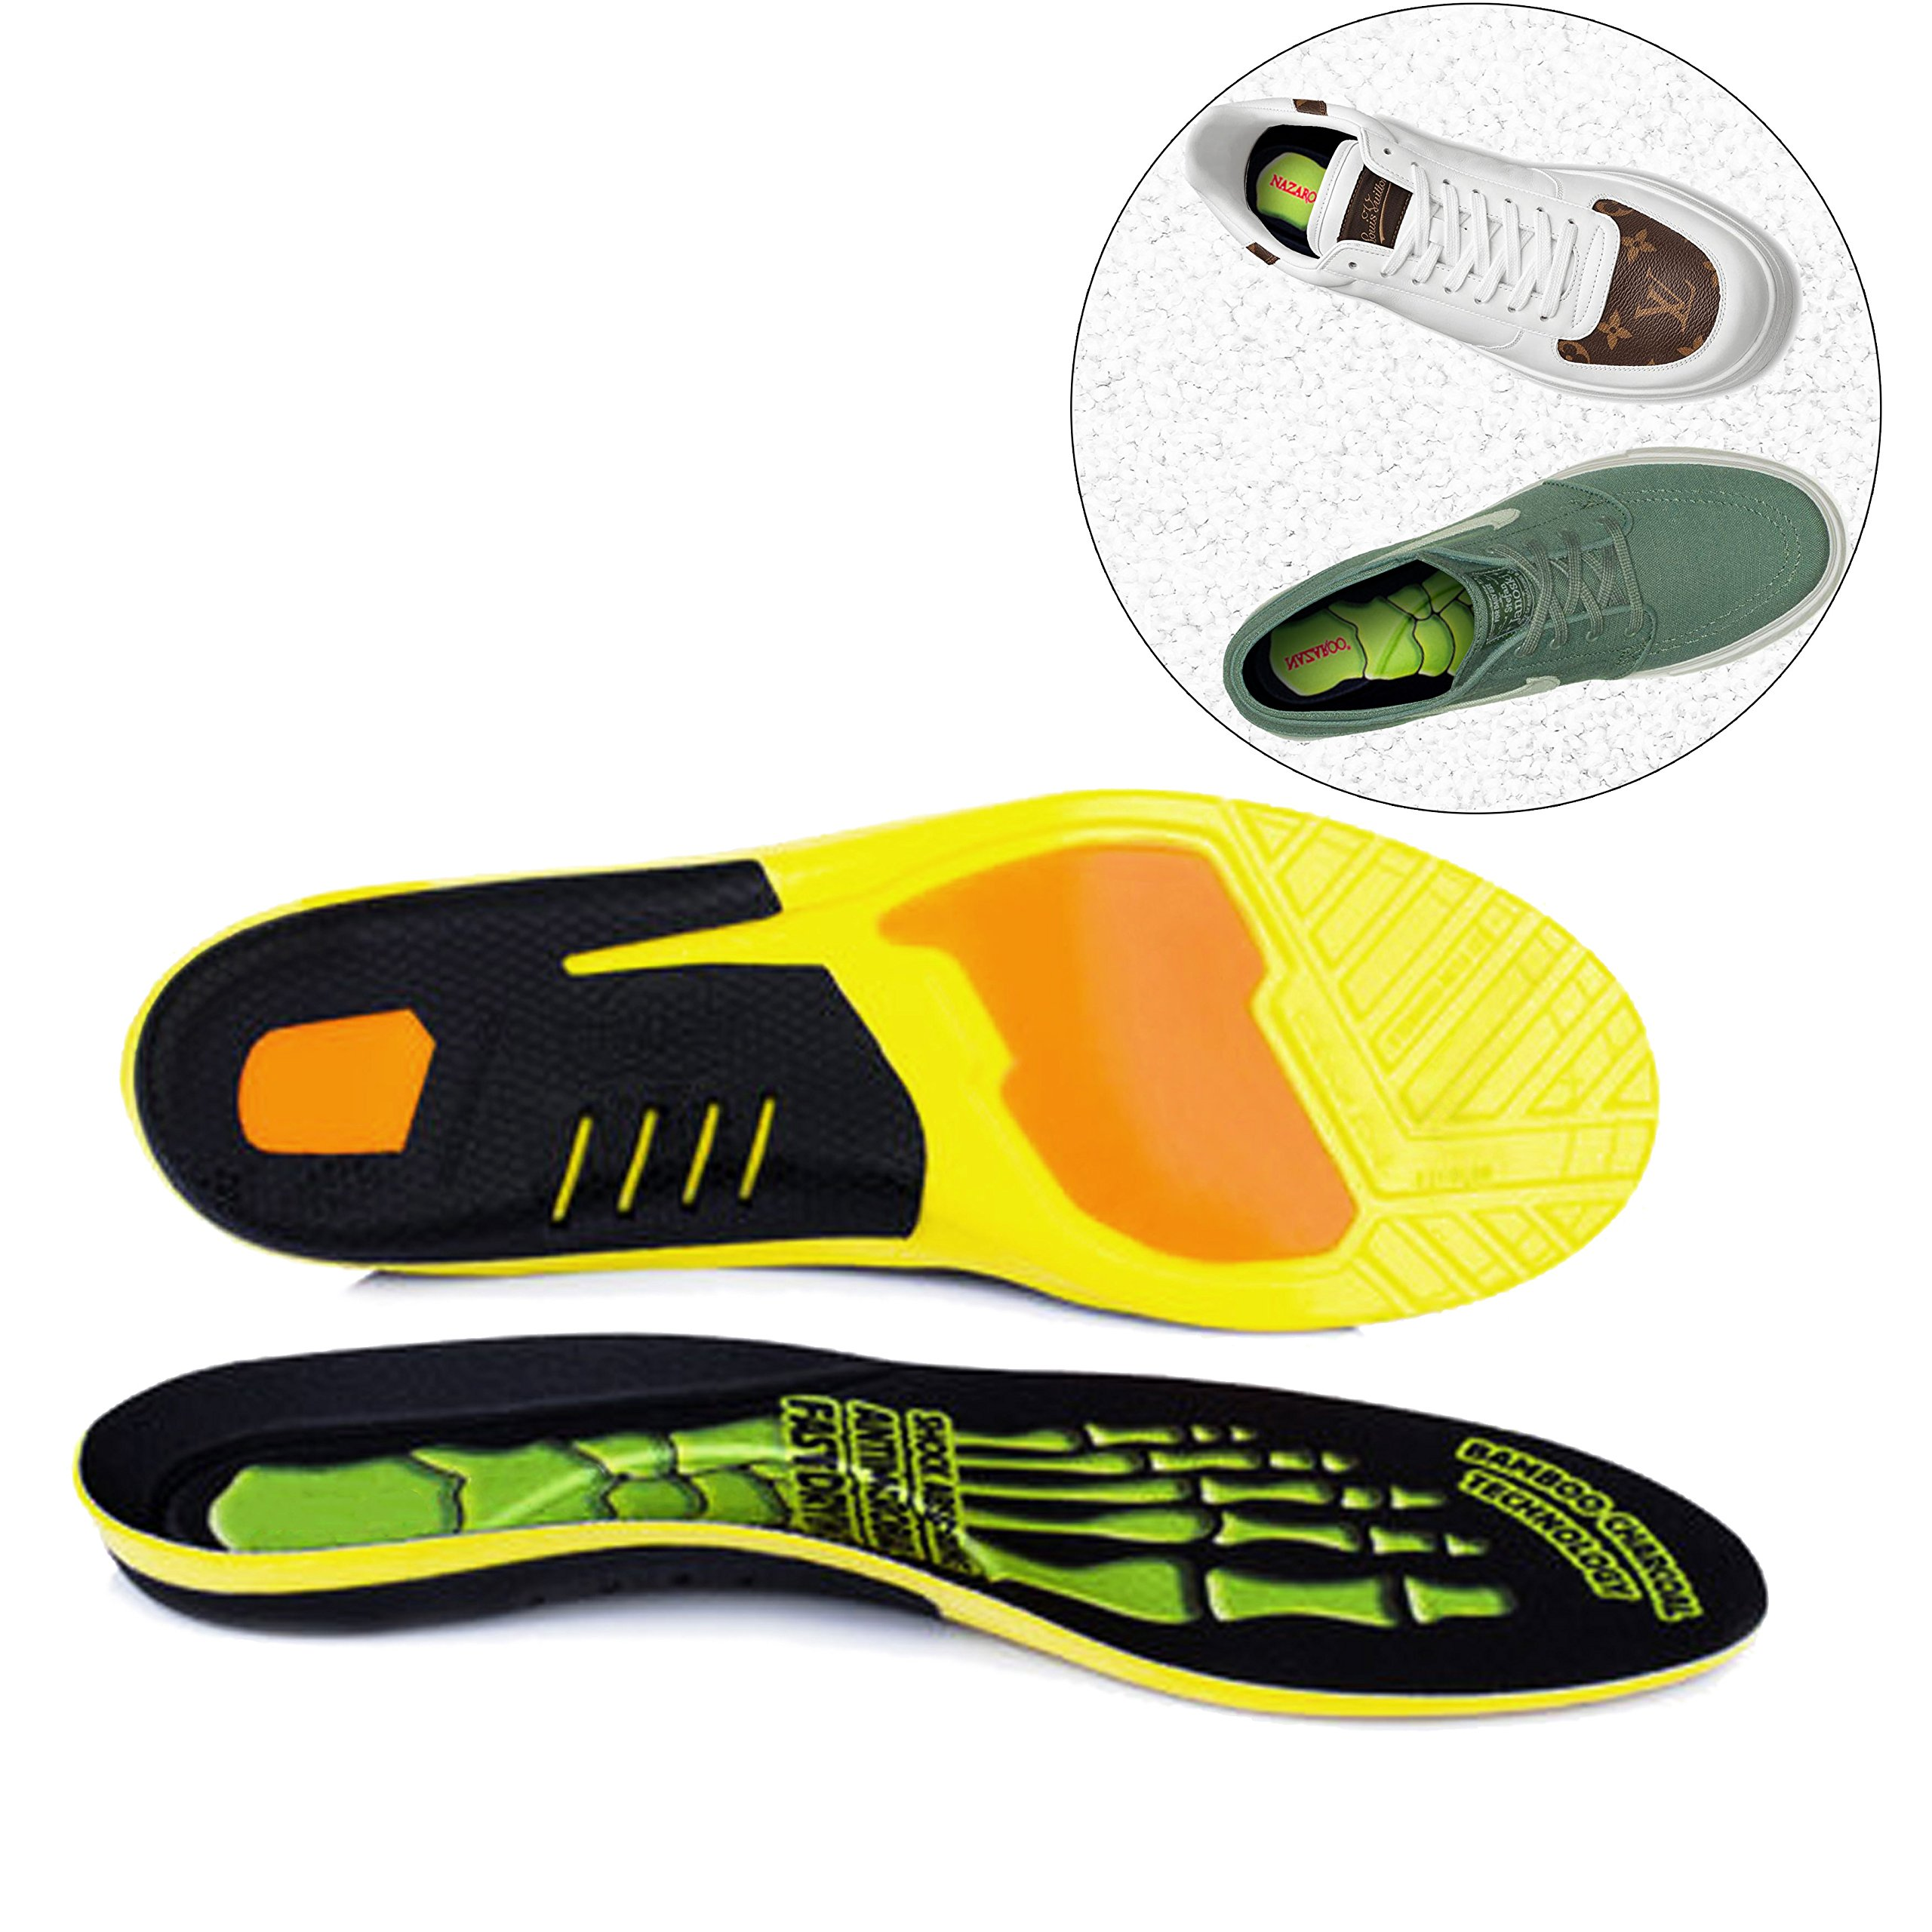 Shoe Insoles Comfort Thin Lightweight Cushioning Orthotic Insoles Memory Foam Insoles Anti-Fatigue Technology Professional-Grade Foot Support (Women 8-9.5, Men 7-8.5)